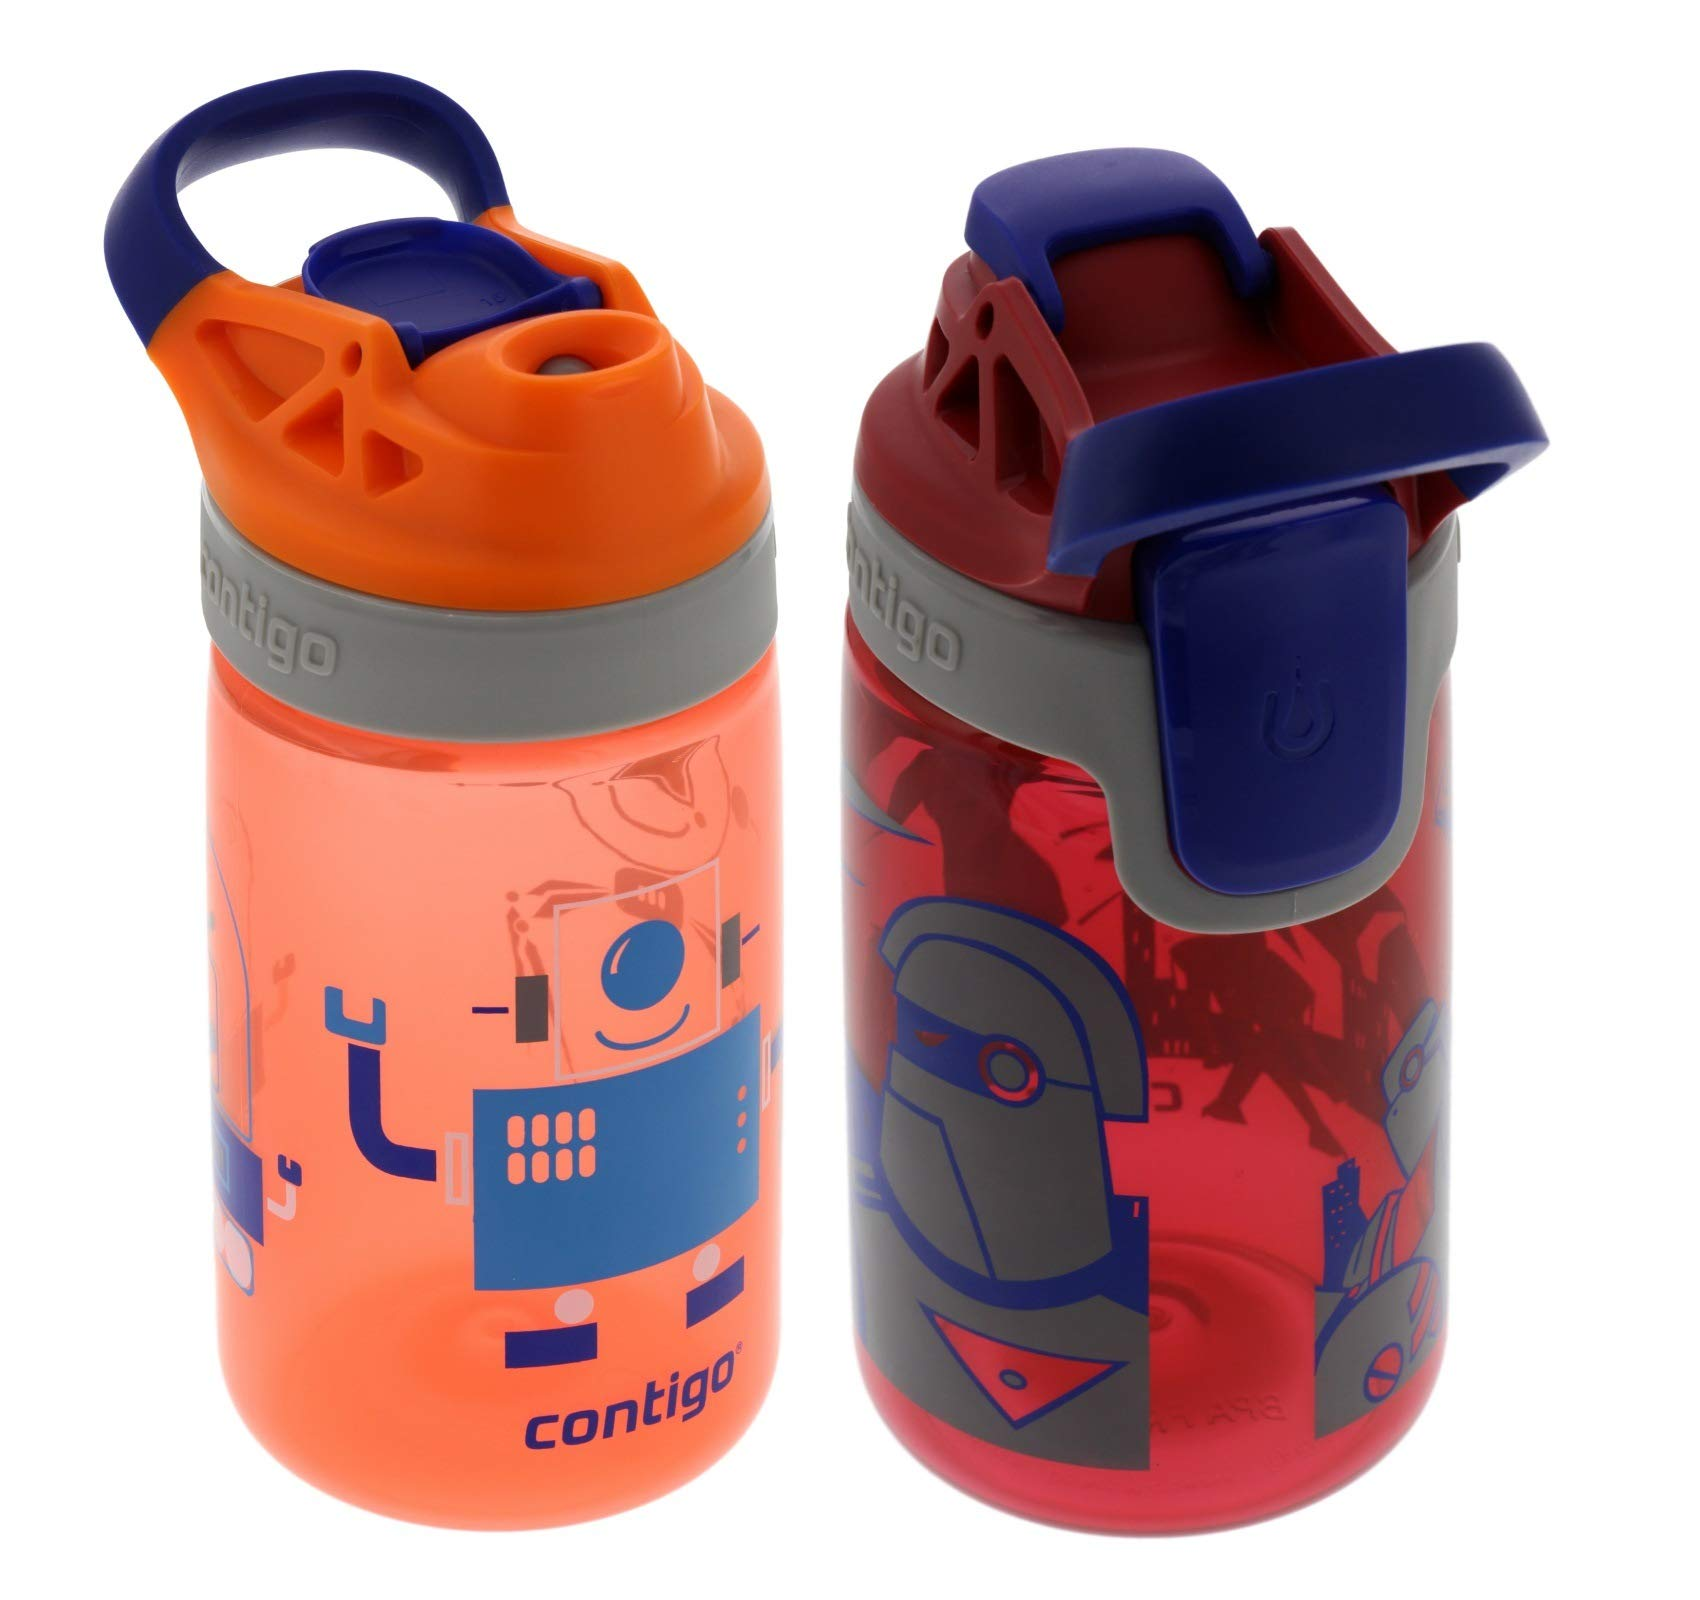 Contigo 14oz Kids Autoseal Gizmo Sip Water Bottles, Nectarine & Cardinal (2 Pack) - Perfect for Children & Parents on the Go